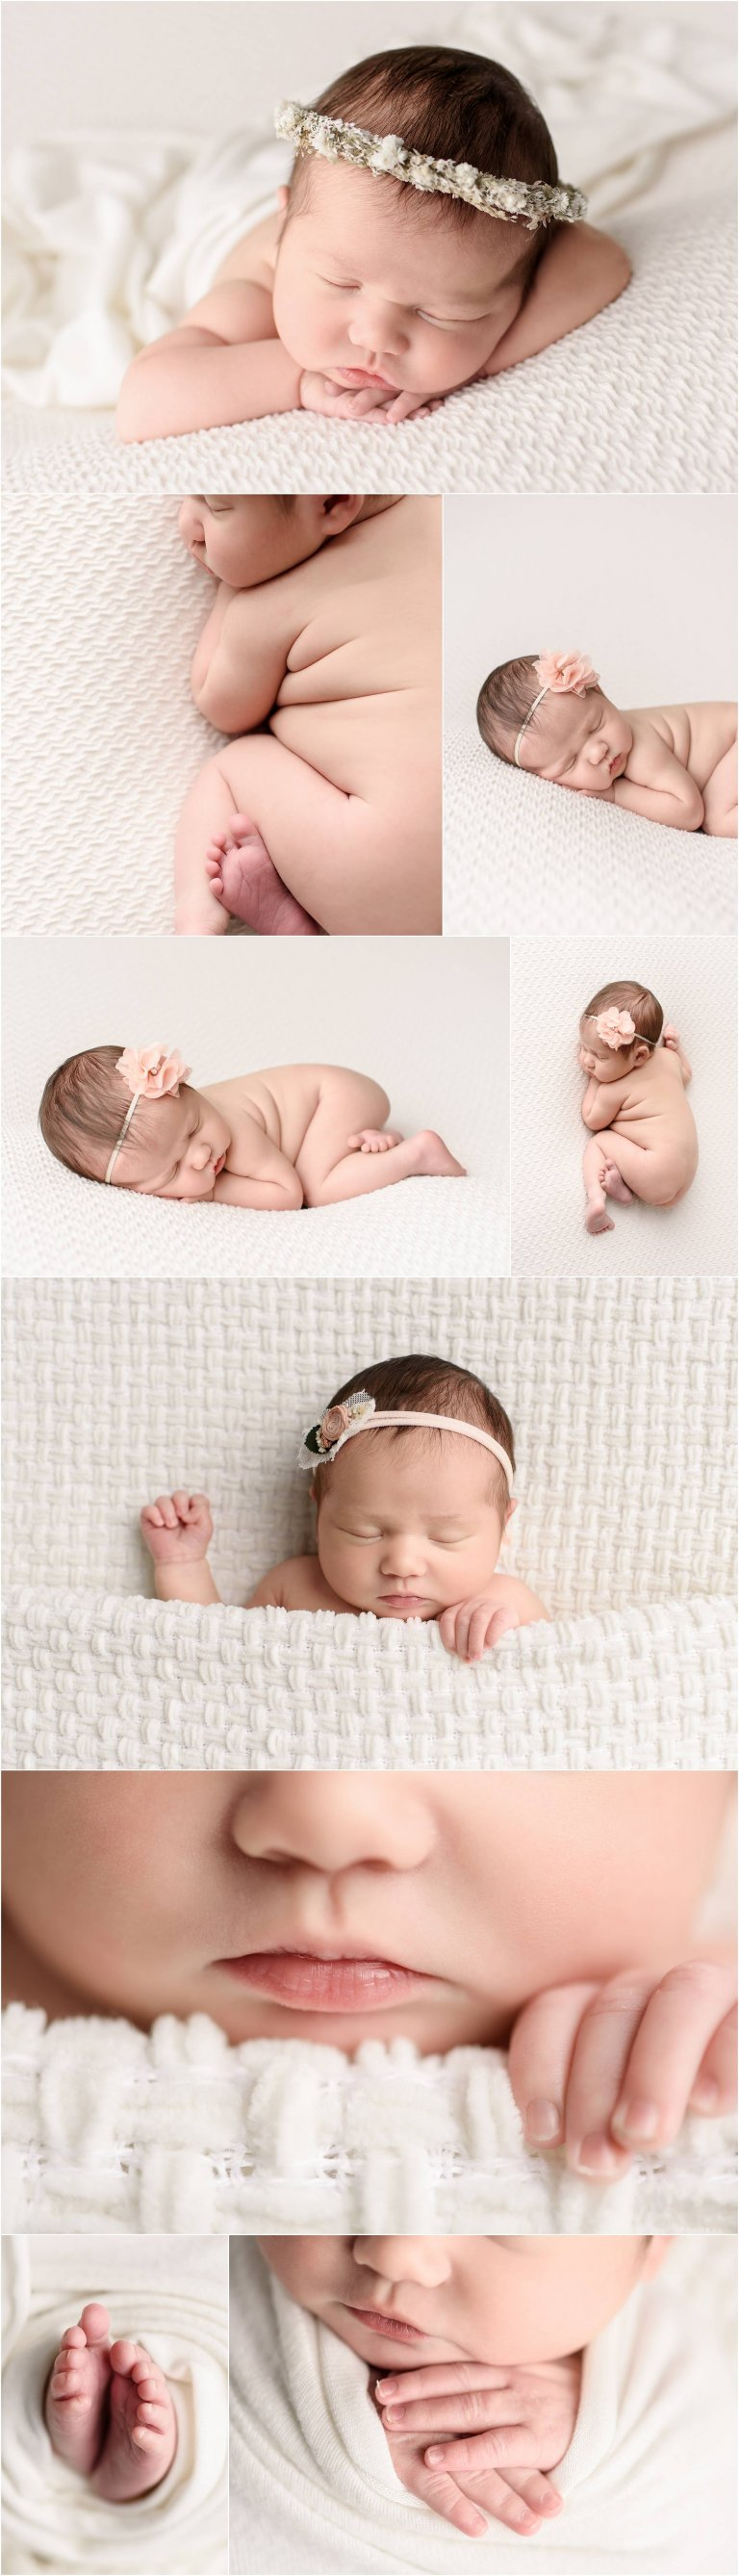 newborn photographer moscow pa captures bare bottom baby girl posed on cream backdrop.